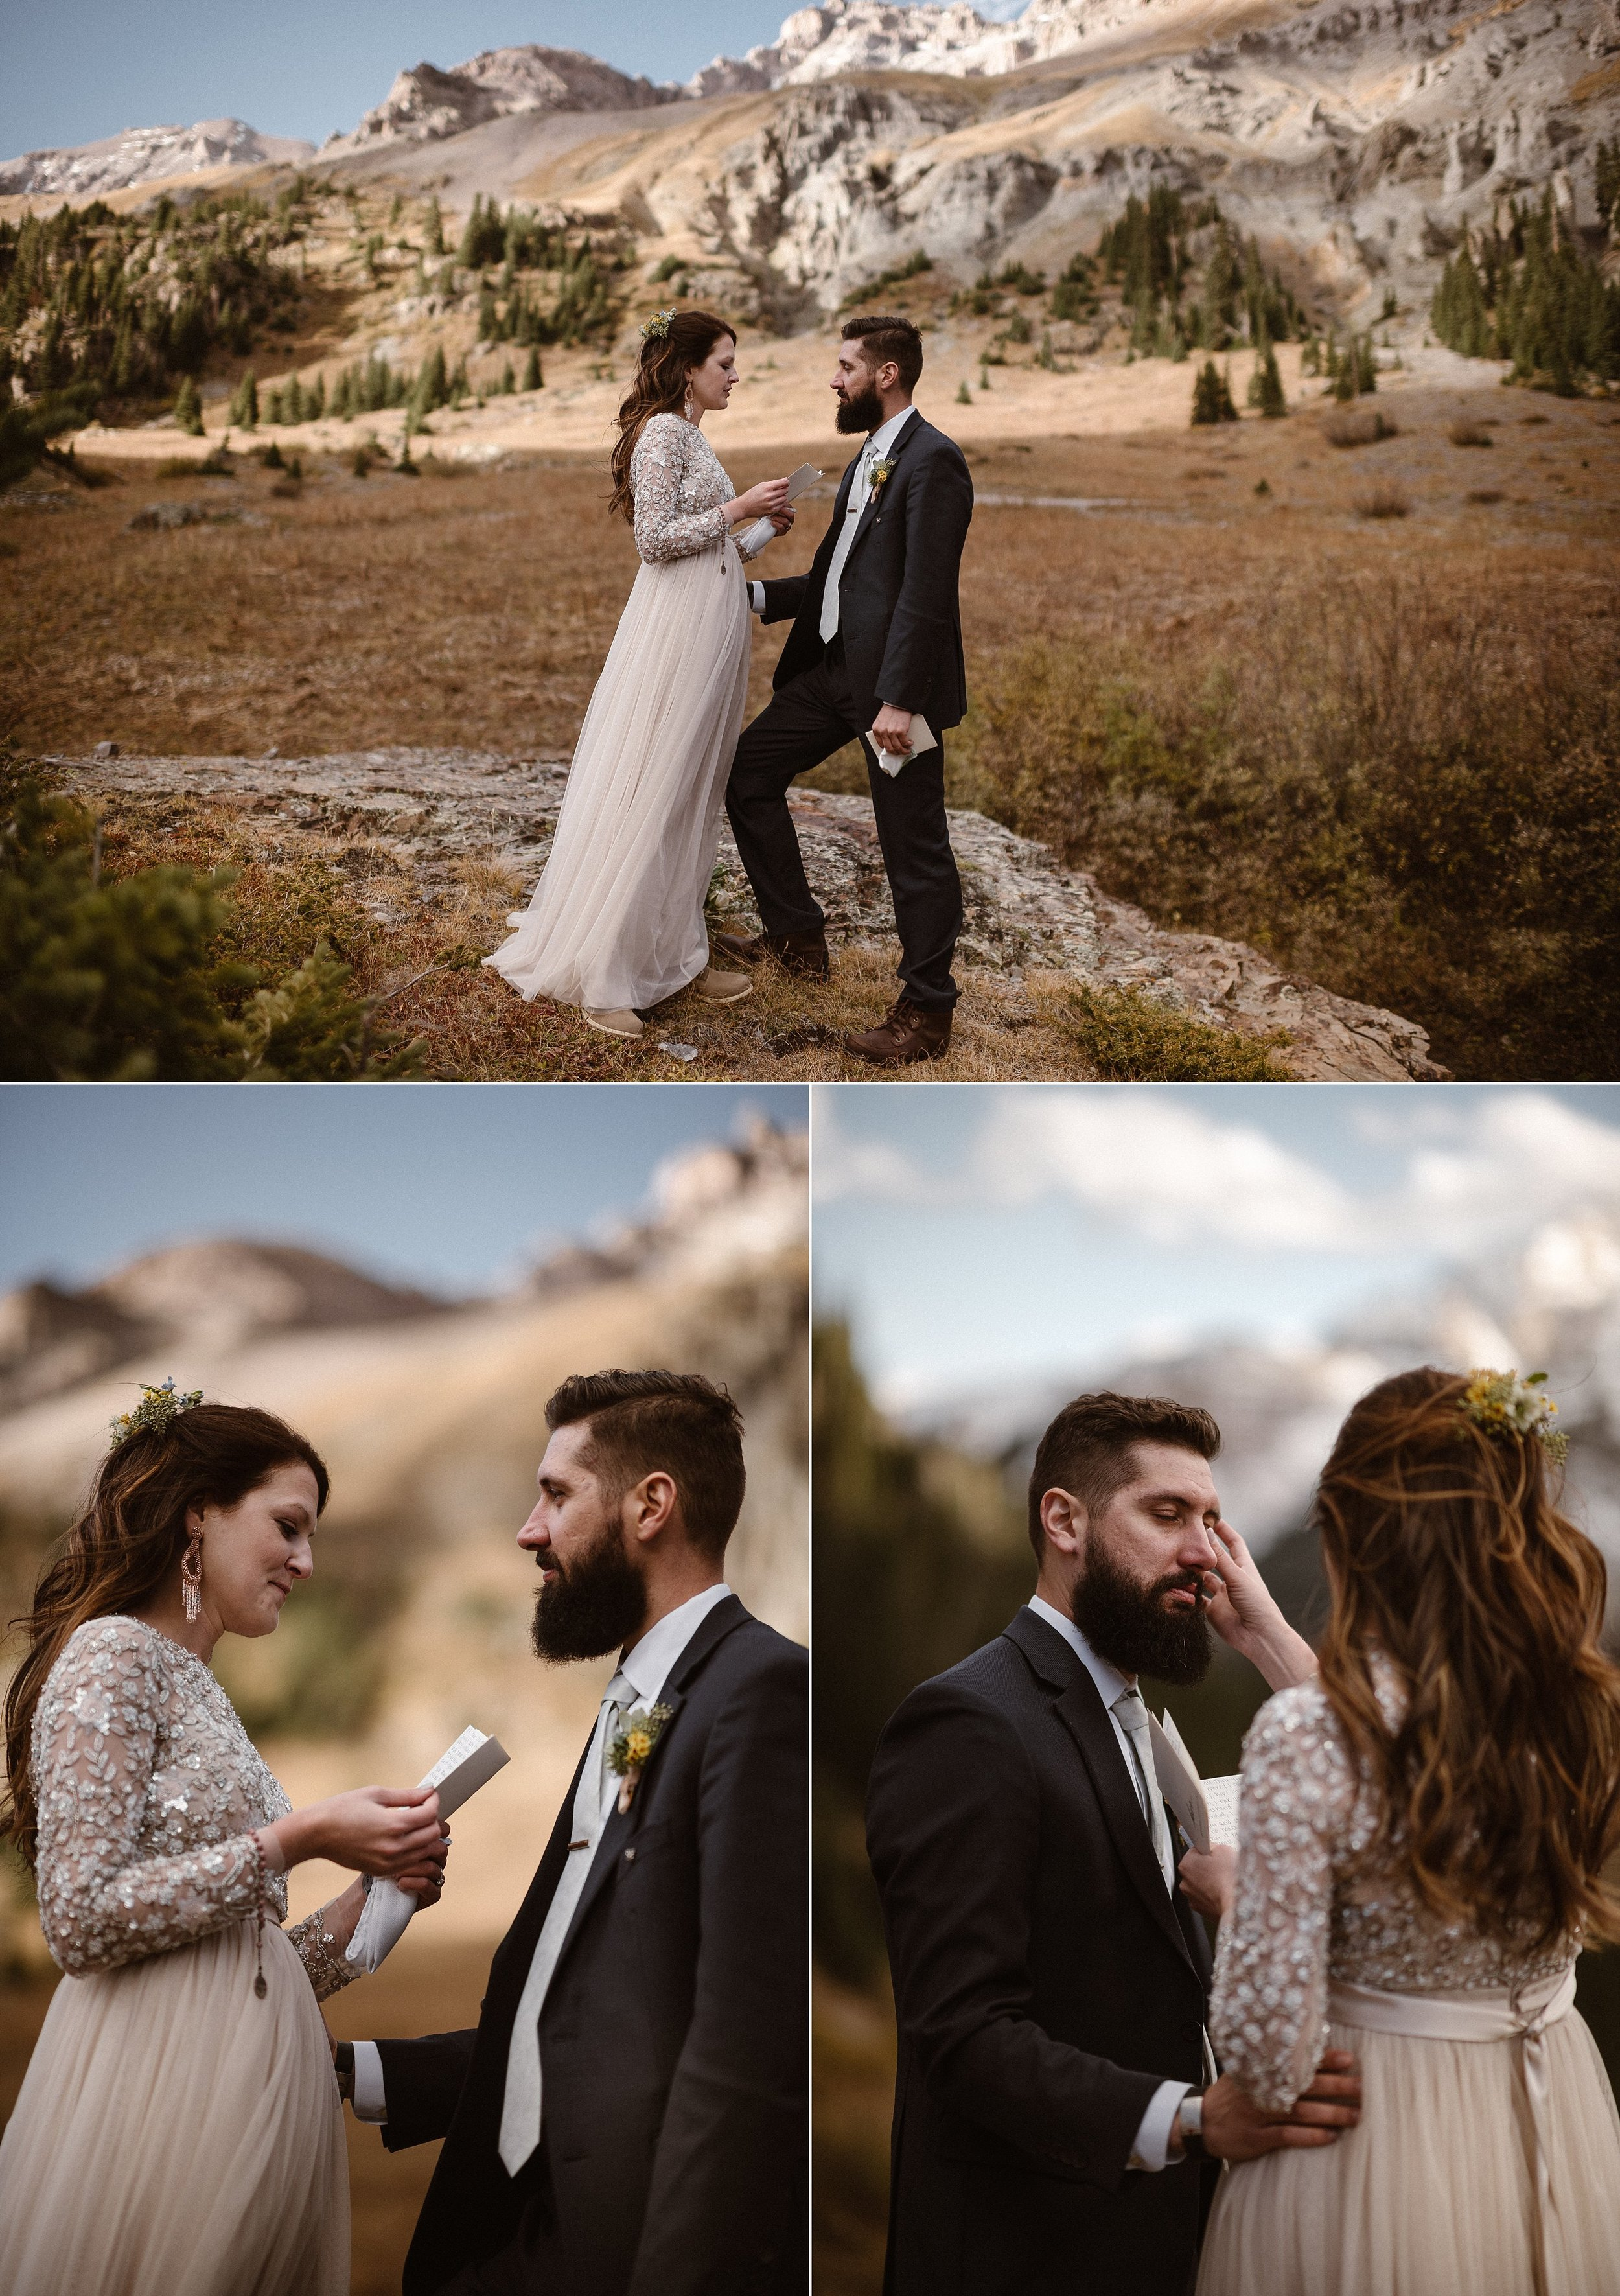 Jen wiped her groom's tears away as she finished her personal vows at their intimate elopement ceremony high above Ouray, Colorado in the San Juan Mountains. This romantic couple took off to the mountains with only their intimate elopement photographer Maddie Mae to celebrate their nuptials exactly how they wanted to, privately and with adventure.